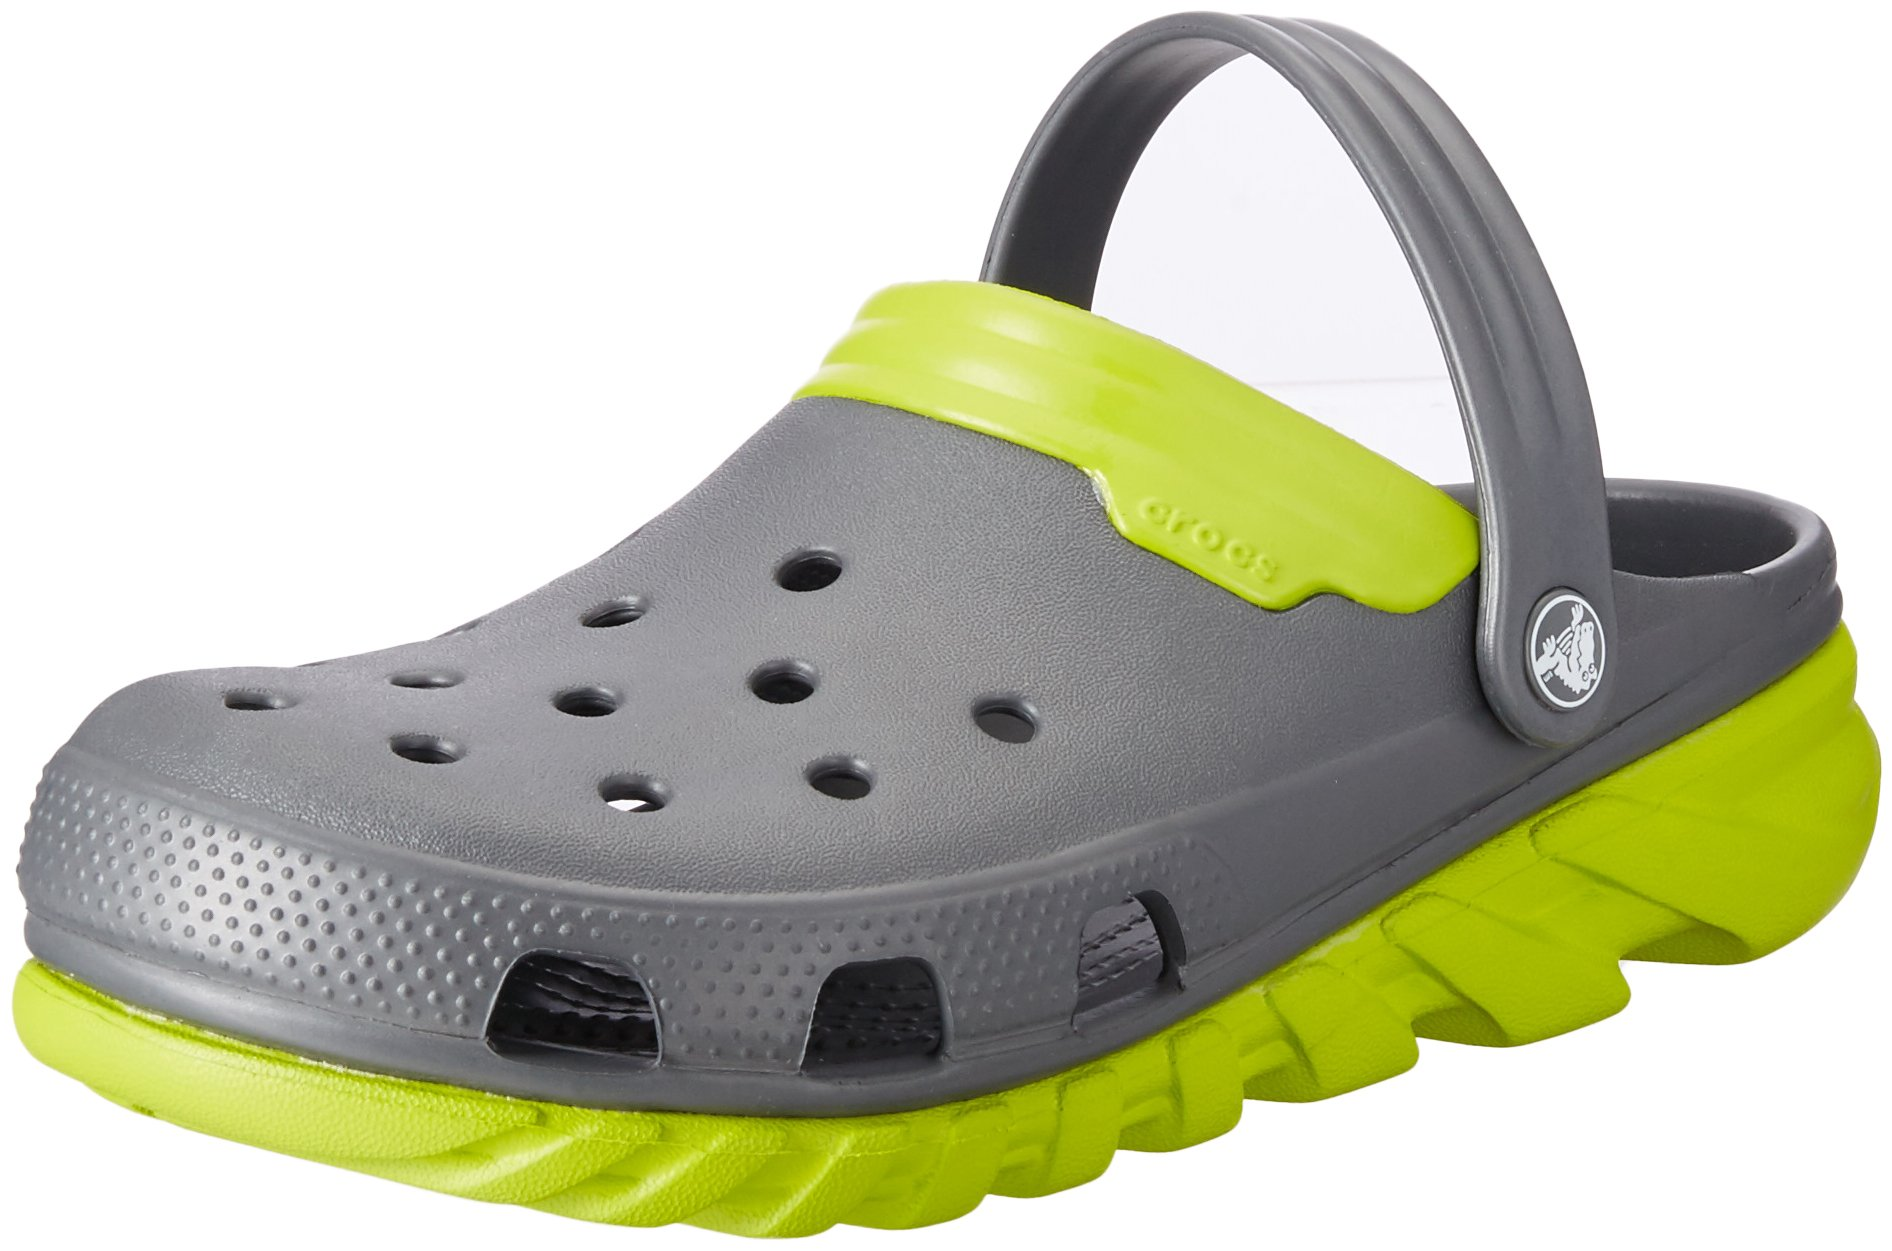 Crocs Unisex Duet Max Clog, Graphite/Volt Green, 11 M US Men / 13 M US Women by Crocs